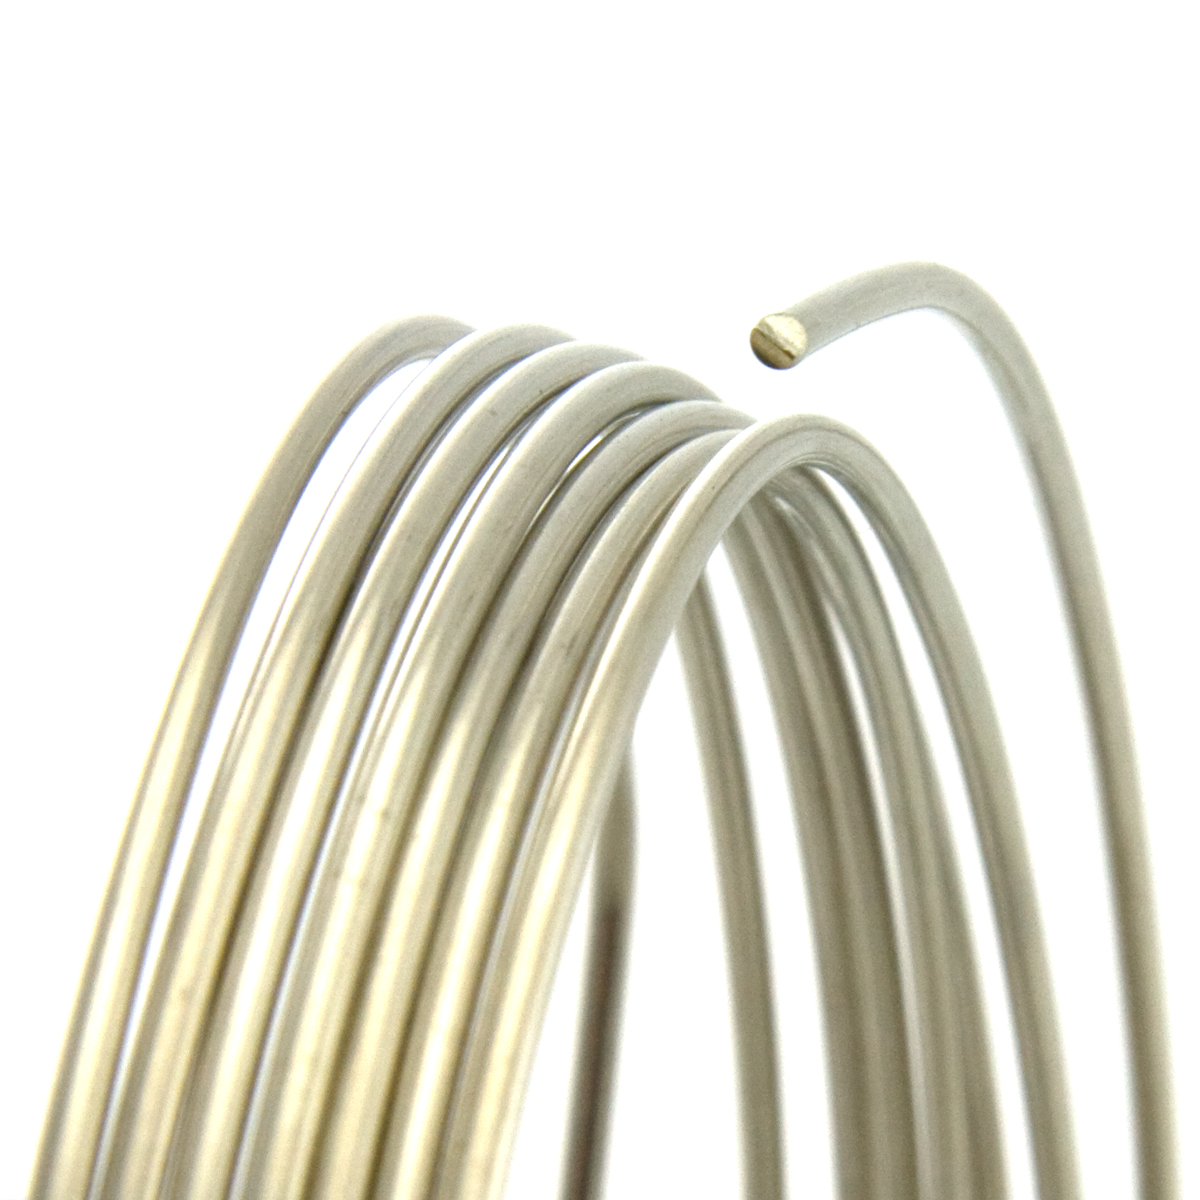 22 Gauge Round Half Hard Nickel Silver Wire: Wire Jewelry | Wire ...